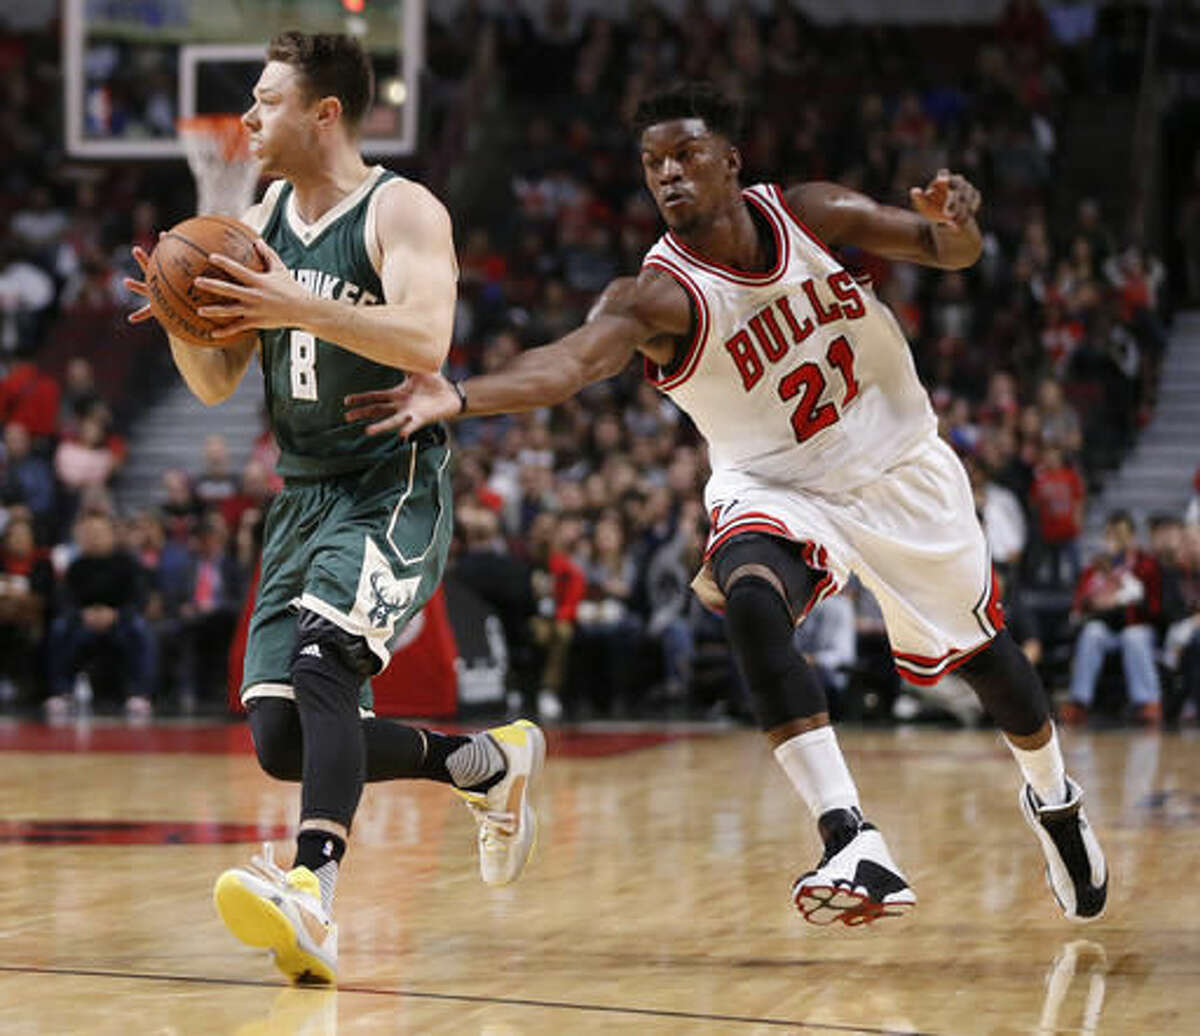 FILE - In this Oct. 3, 2016 file photo, Chicago Bulls guard Jimmy Butler tries to knock the ball away from Milwaukee Bucks guard Matthew Dellavedova during an NBA preseason basketball in Chicago. The Bulls figure to be a whole lot more interesting this season with the additions of Dwyane Wade and Rajon Rondo. (AP Photo/Charles Rex Arbogast File)